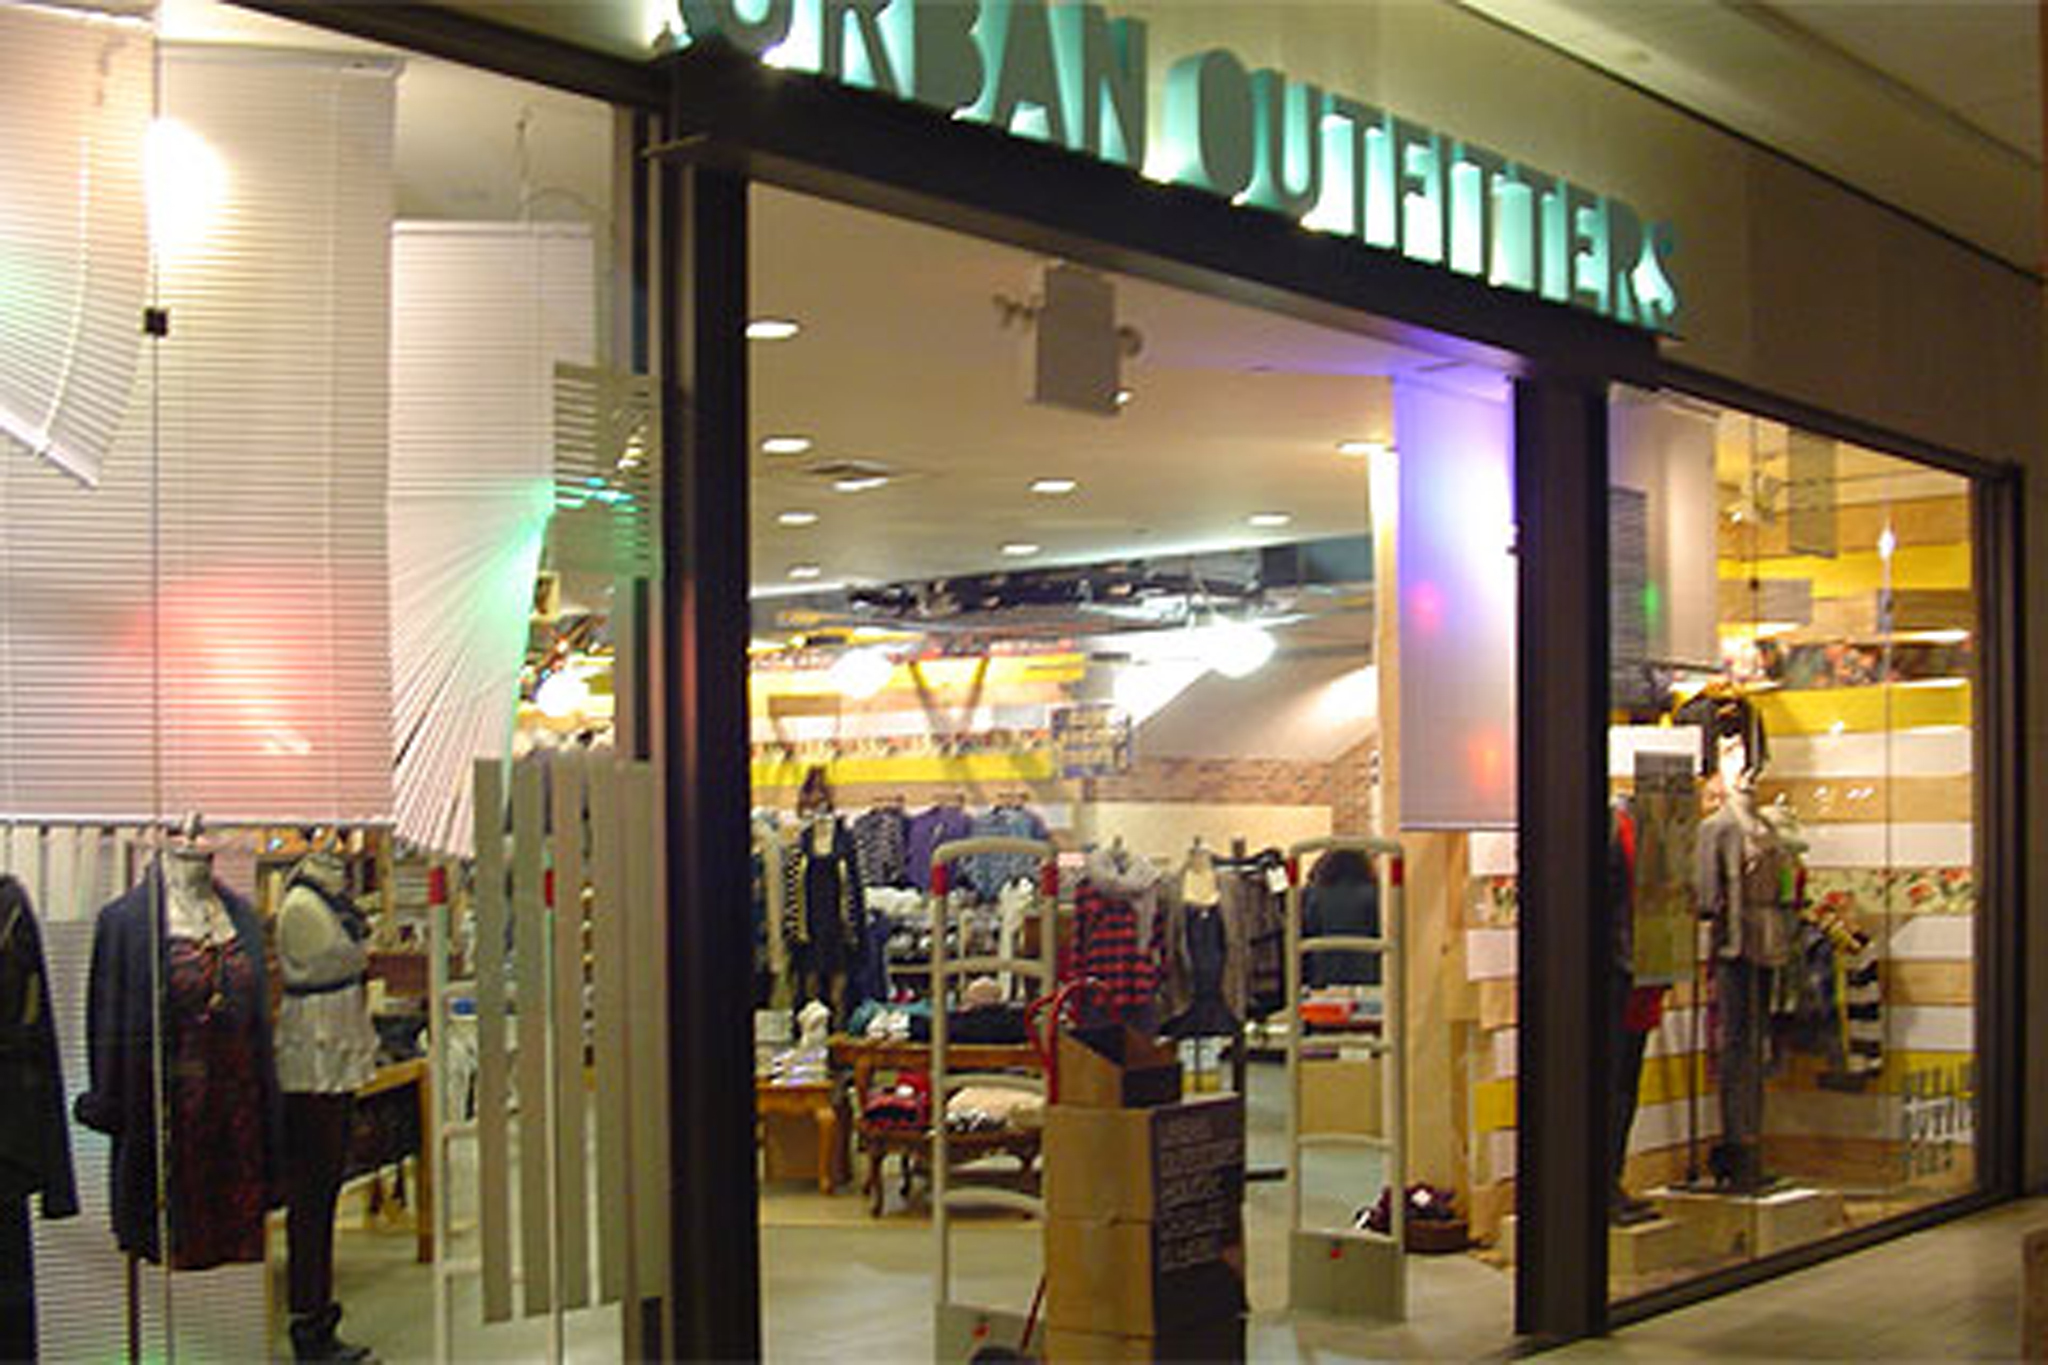 At Urban Outfitters you'll find ecclectic and trendy fashions for both women and men. Skinny jeans, colorful dresses and tees, shoes, accessories and handbags fill the shelves at Urban Outfitters locations. Head over to their apartment and home department for boho chic decor and stylish furniture.